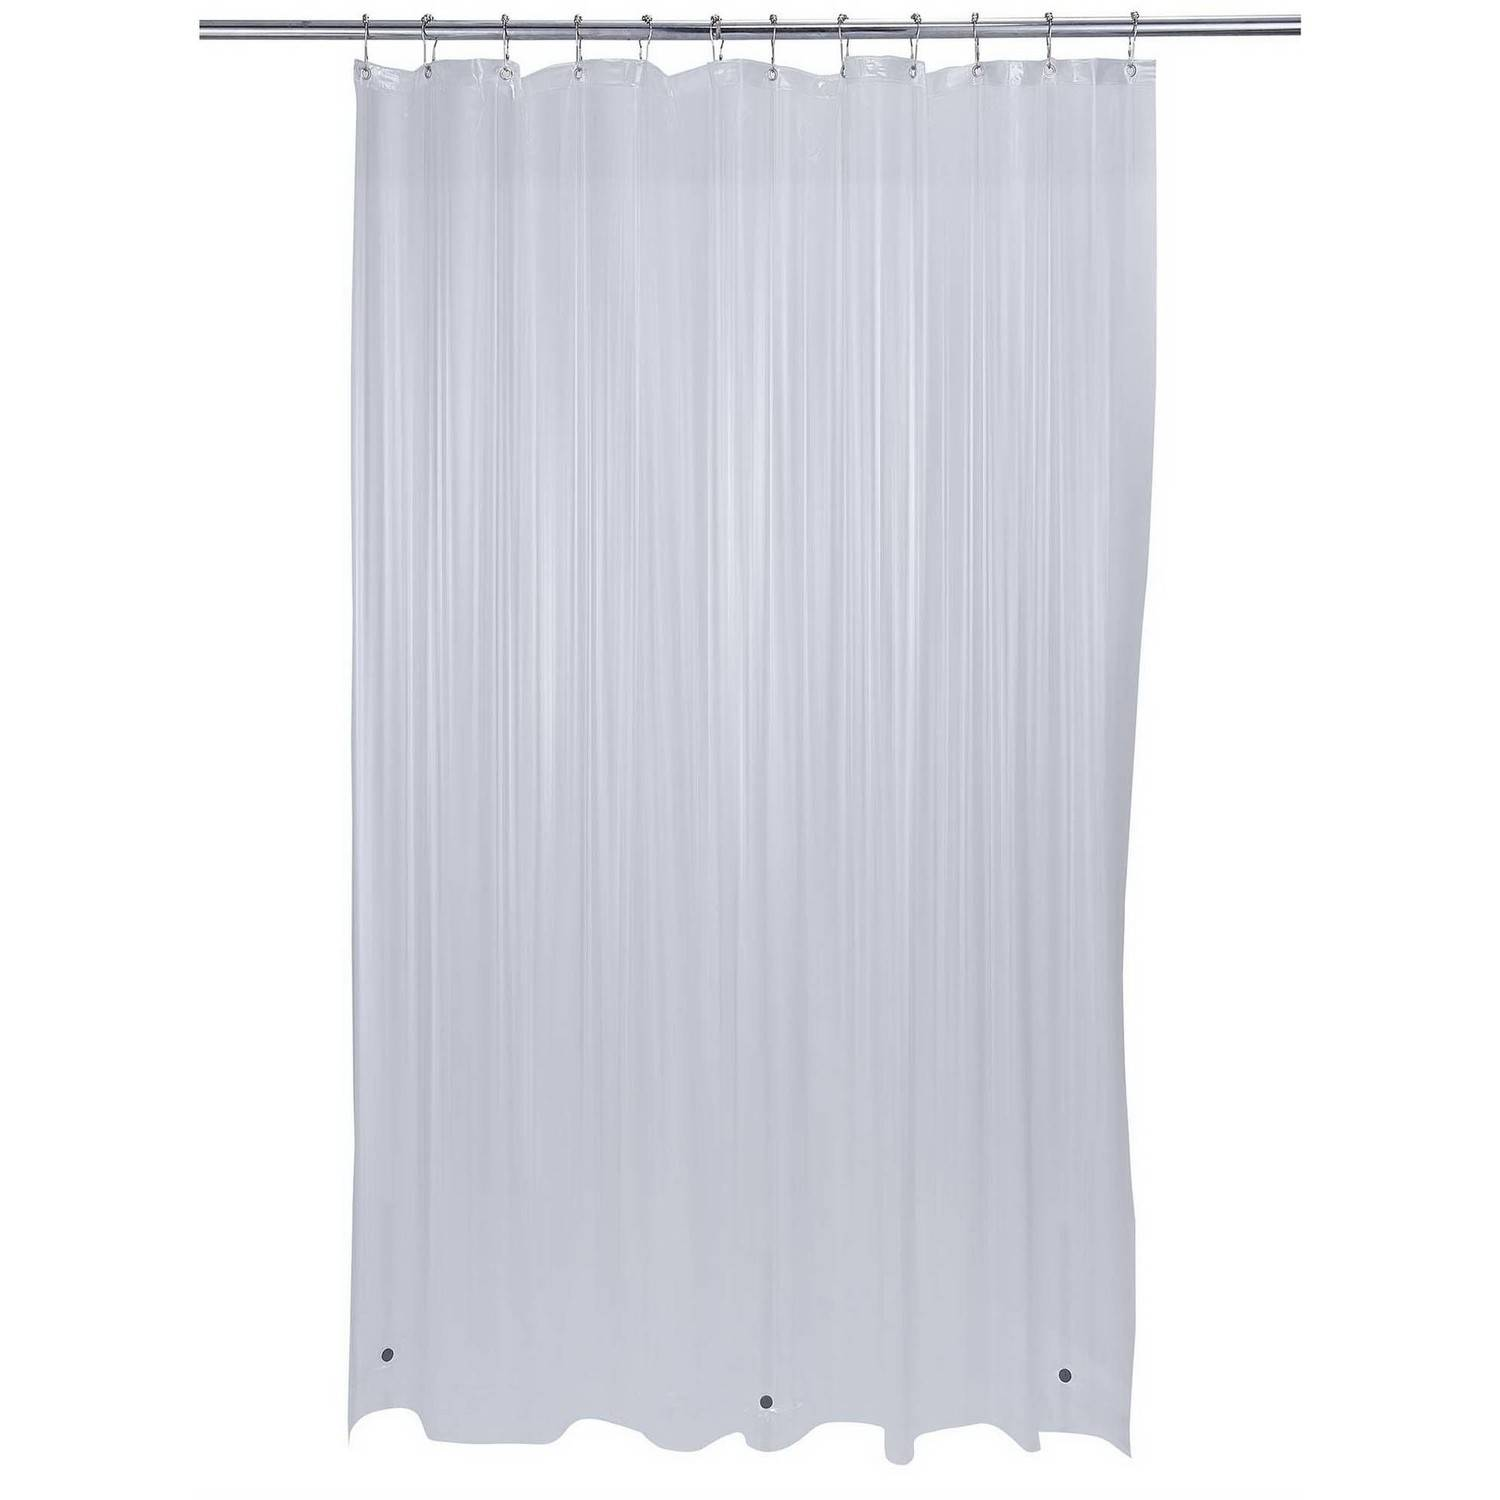 Bath Bliss Shower Curtain Liner, Heavy With Grommets, Super Clear